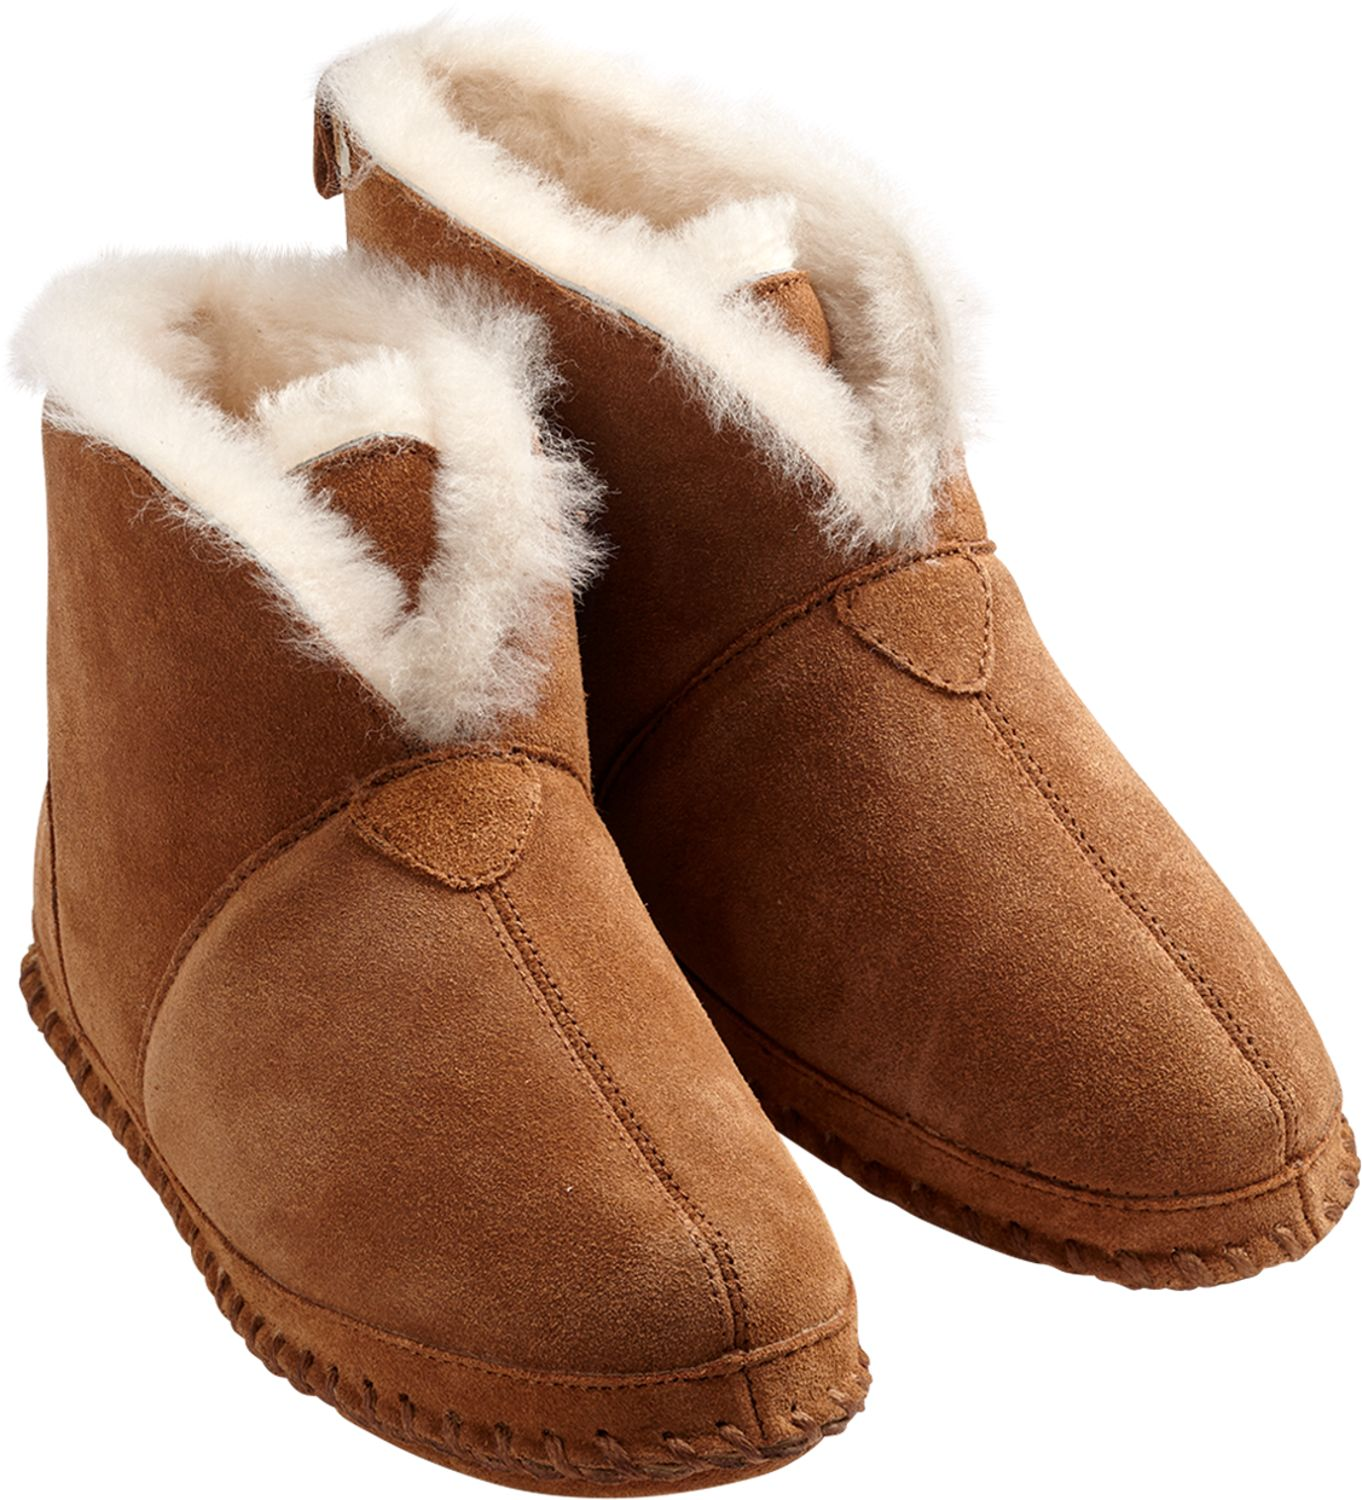 092eaff68176 Mens Shearling Bootie Slippers with Soft Soles